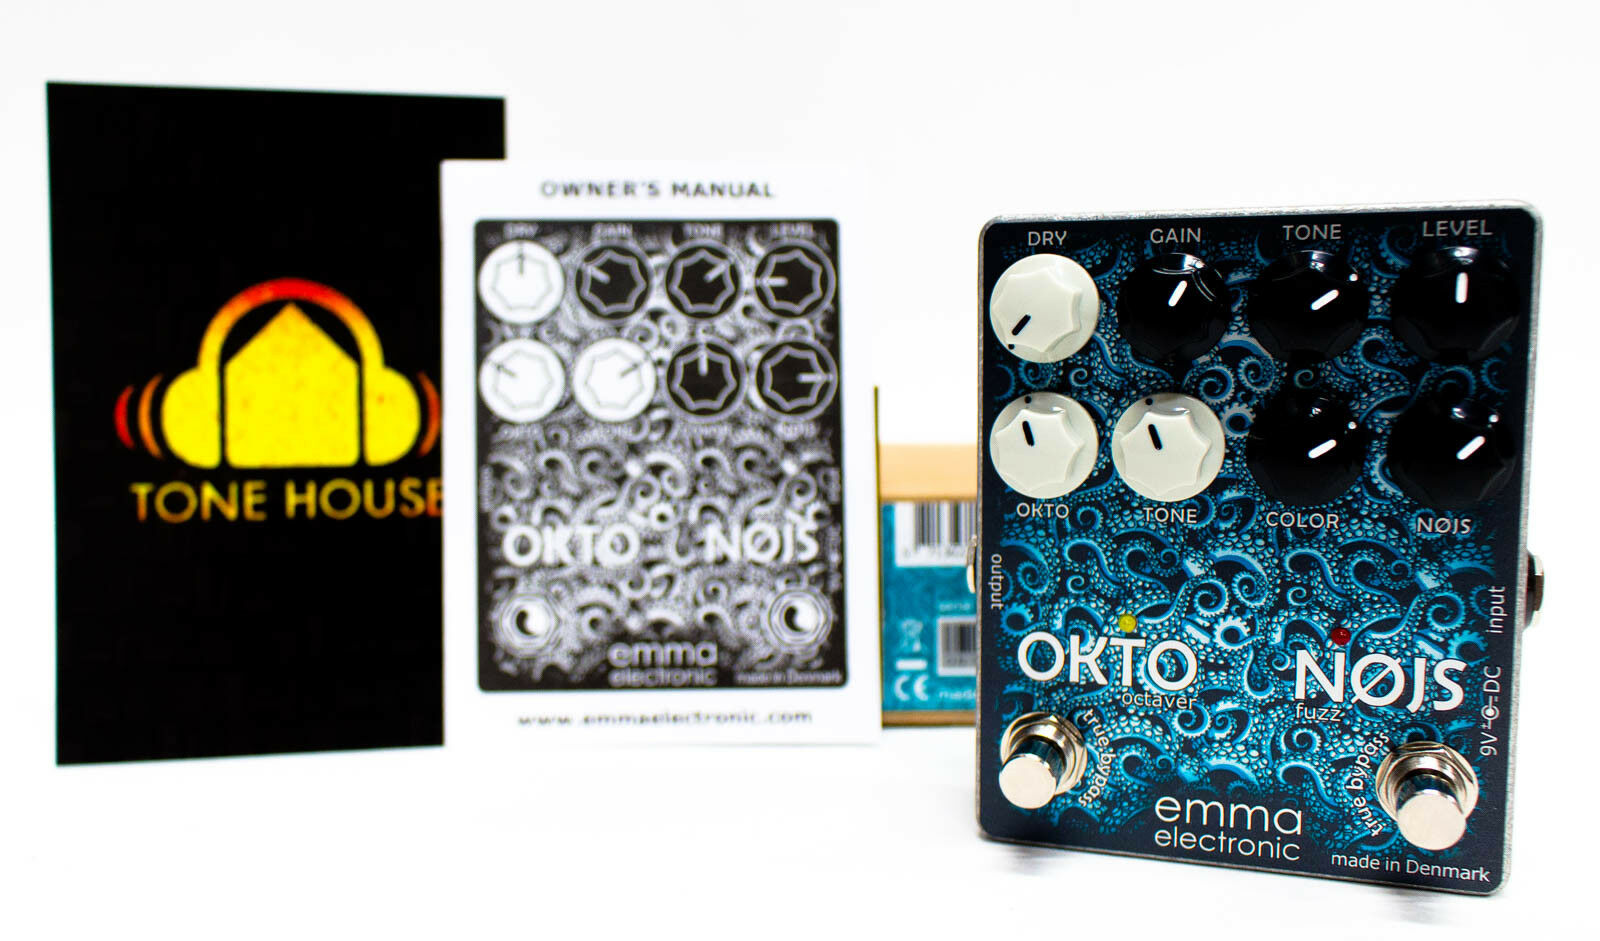 EMMA Electronic ON-1 Okto-Nojs Octave Fuzz Guitar Effect Pedal